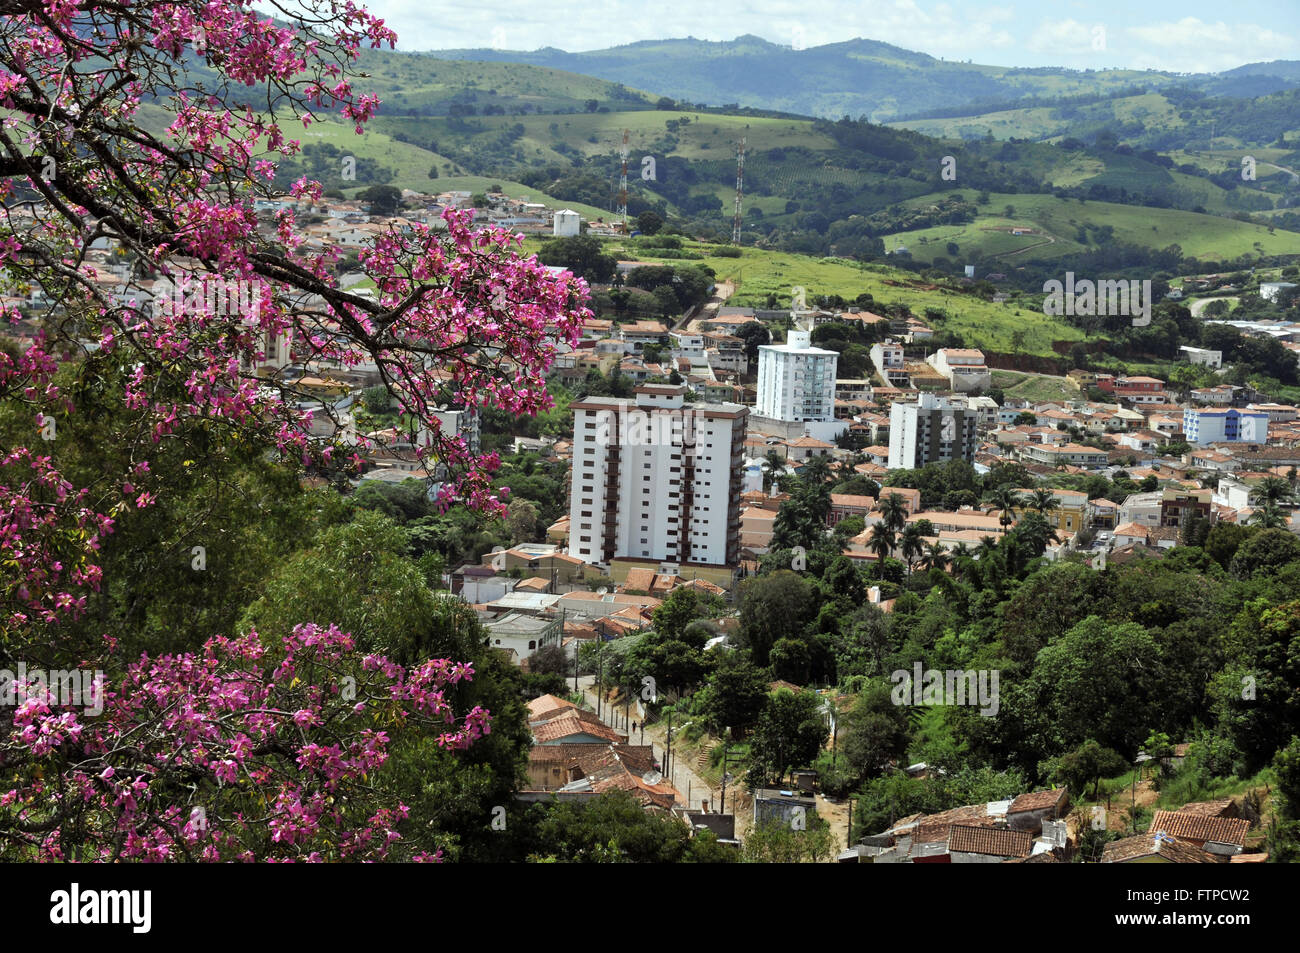 Florida Paineira in the urban area of ??the city of Socorro - Indoor SP - Stock Image